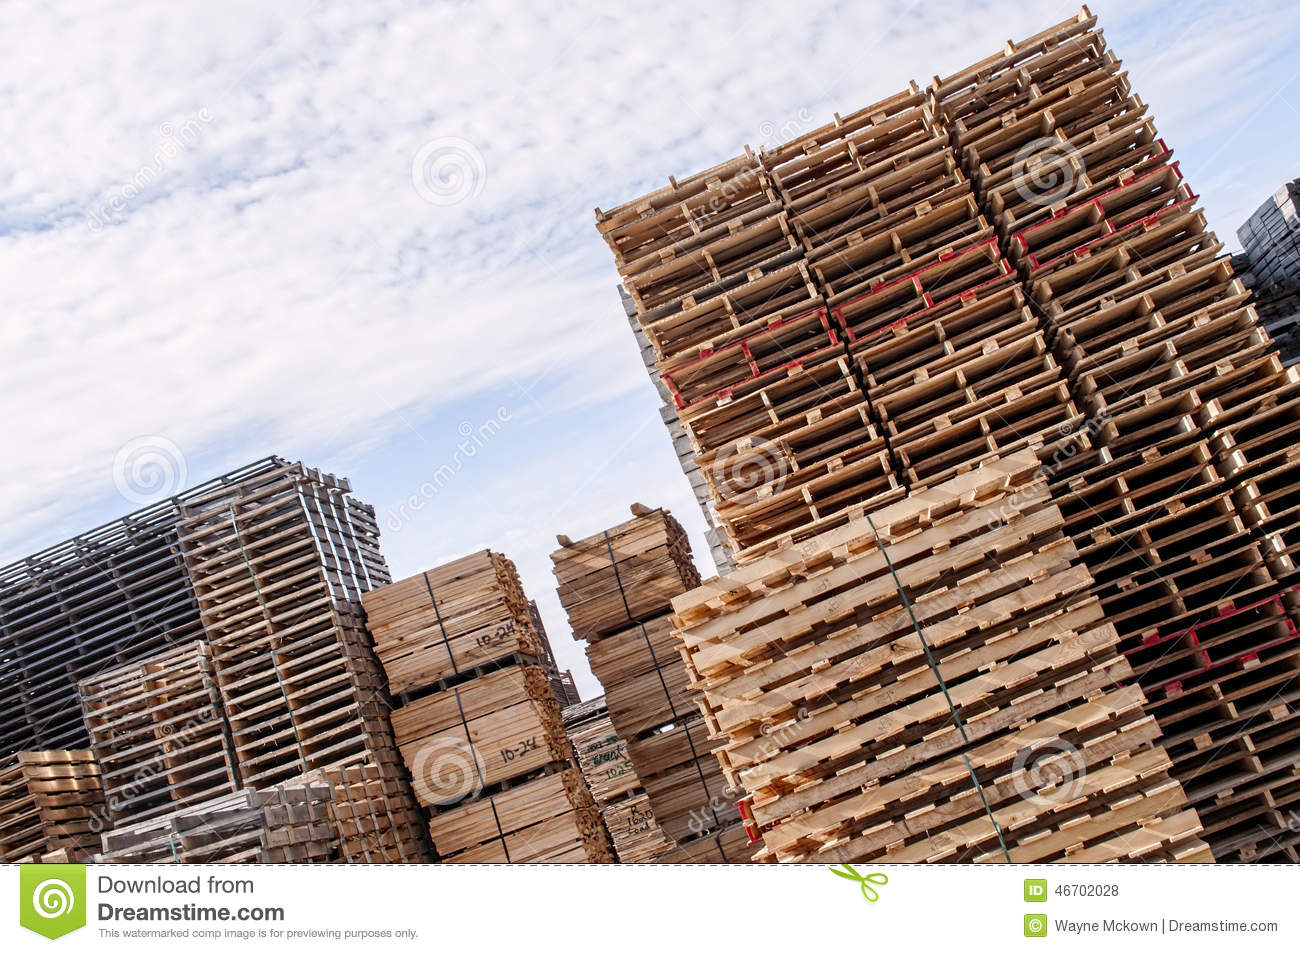 Stacked wood pallets and material